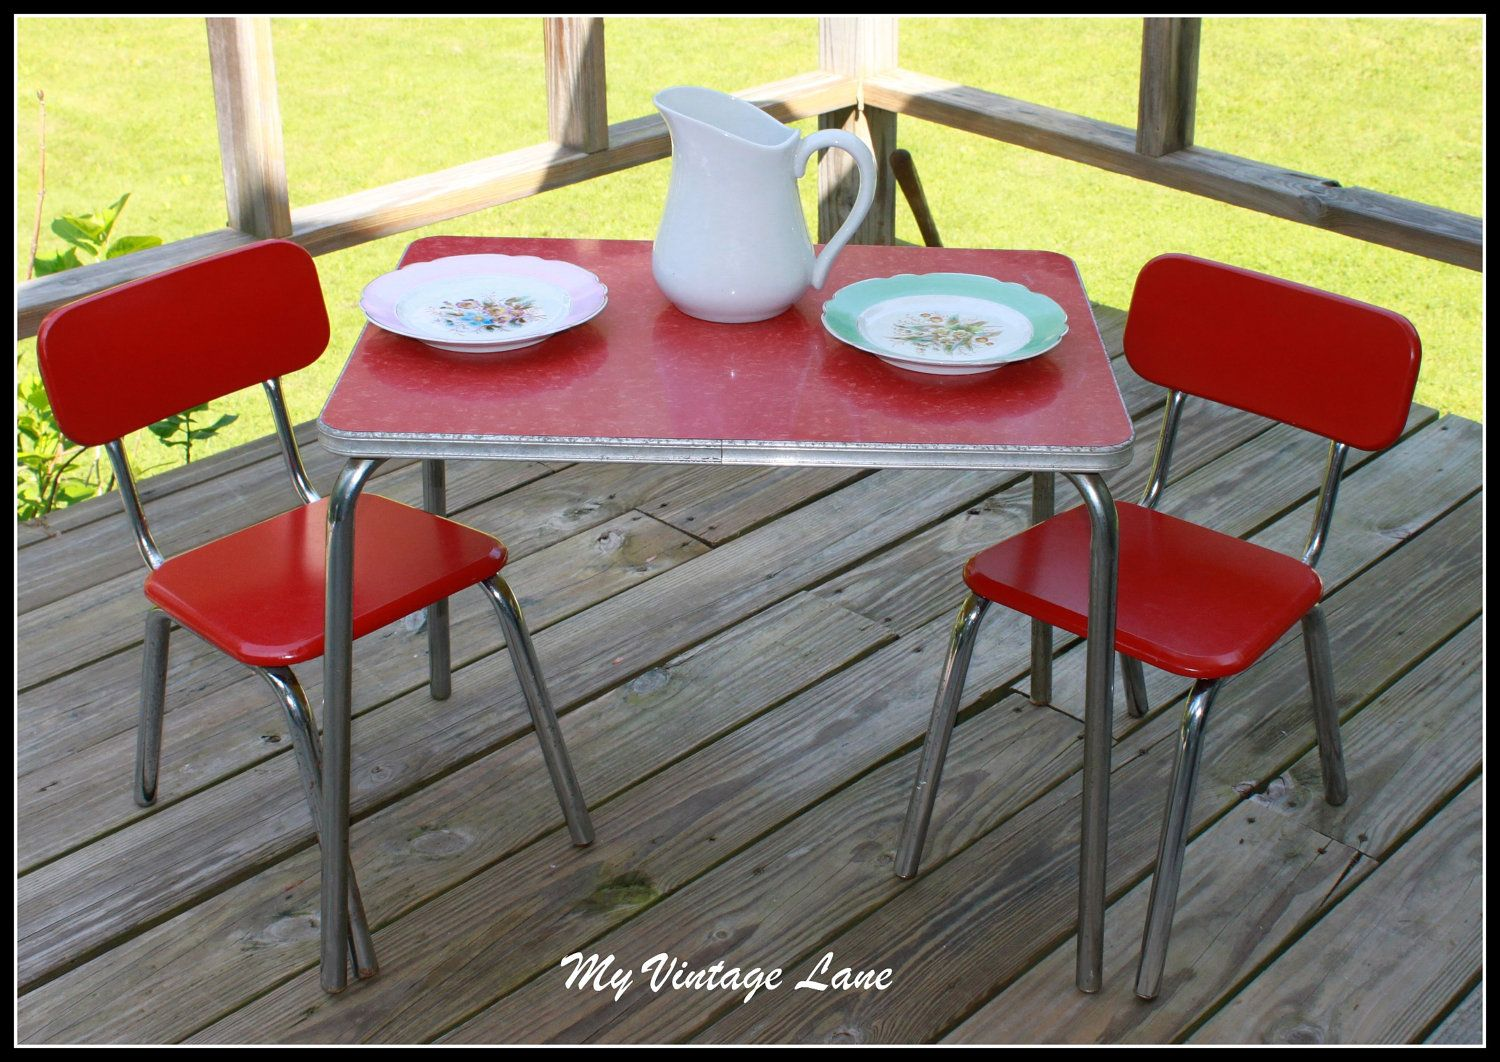 Vintage Table And Chairs New River Adirondack 1950 S Childrens Chair Set Yesteryear By Myvintagelane